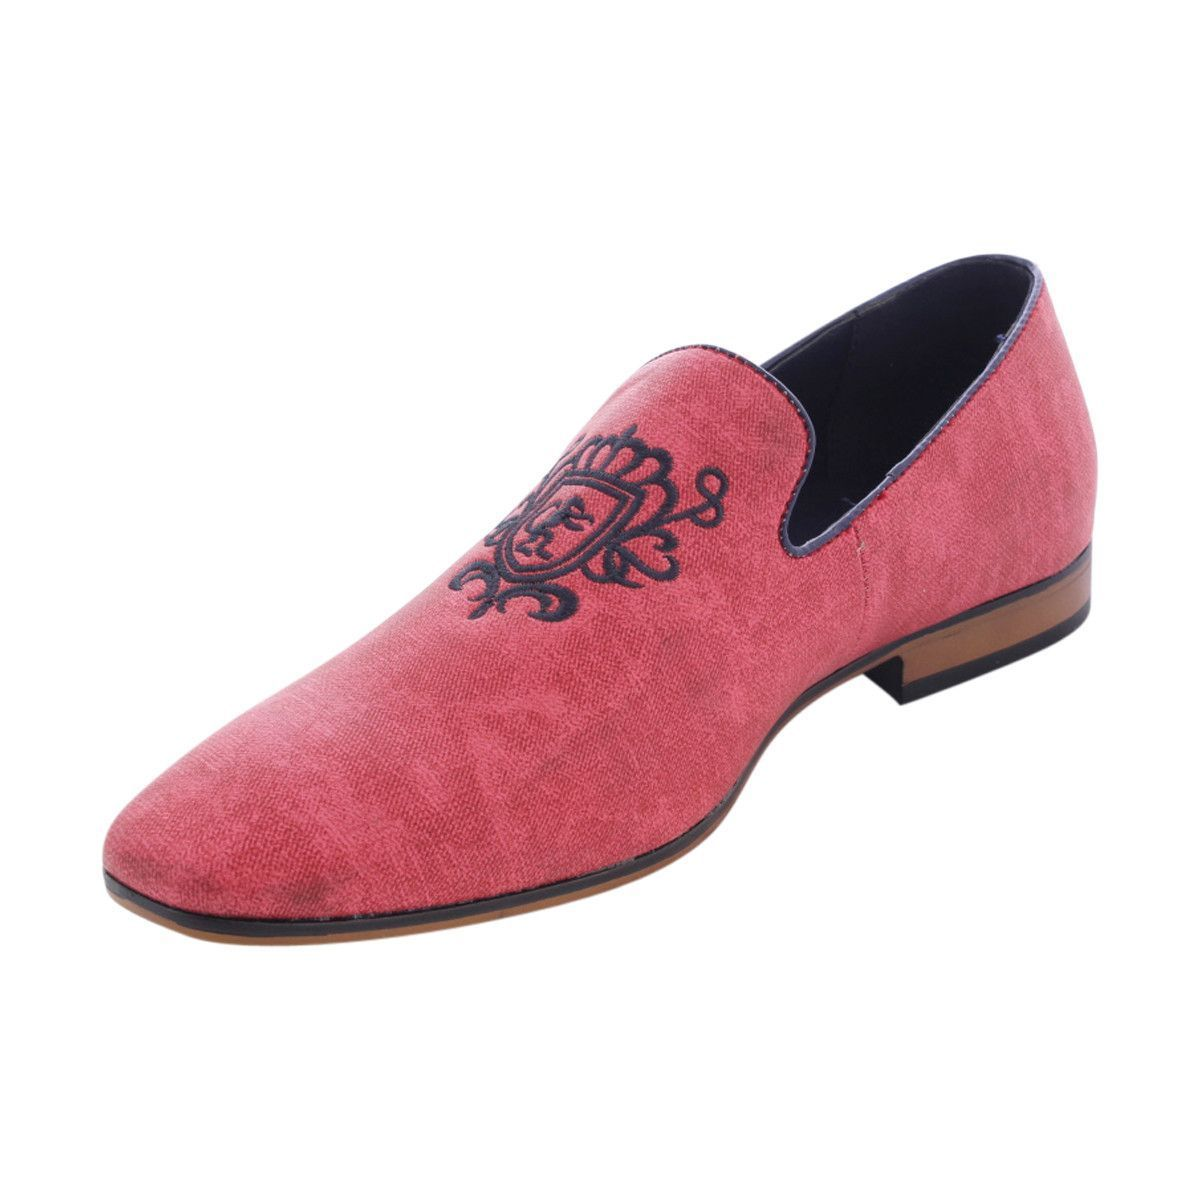 ea3a67110d2 Synthetic upper in red - Slip on design - Faux leather trim top line ...